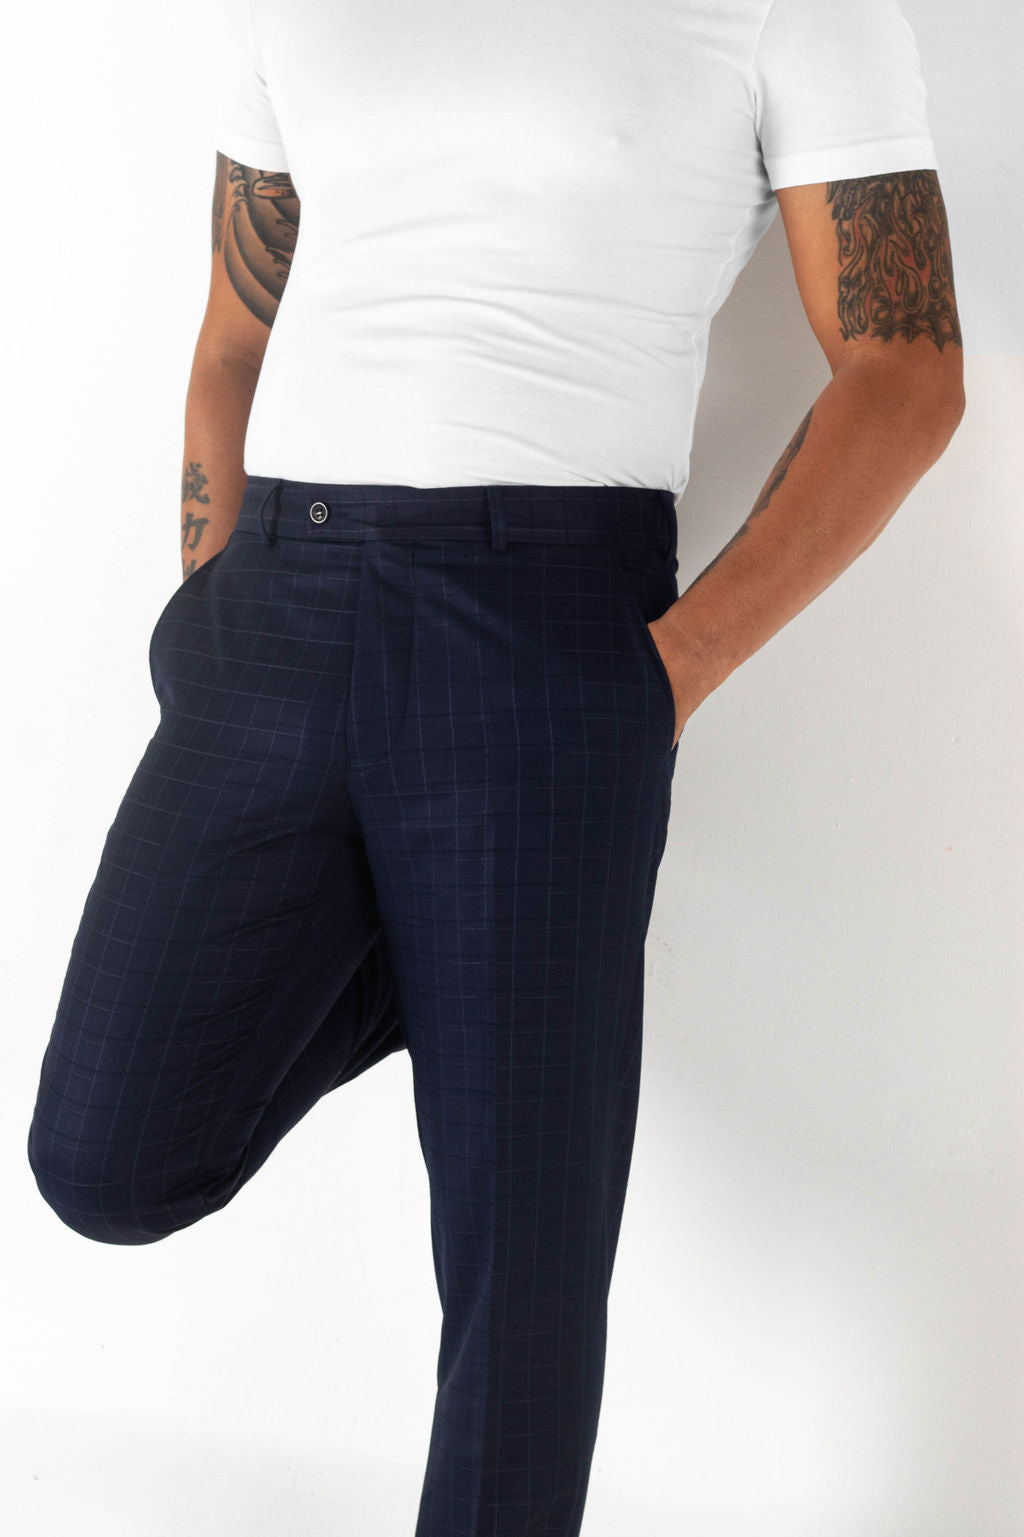 Navy pants, Navy Trousers, Thin Plaid Stripes